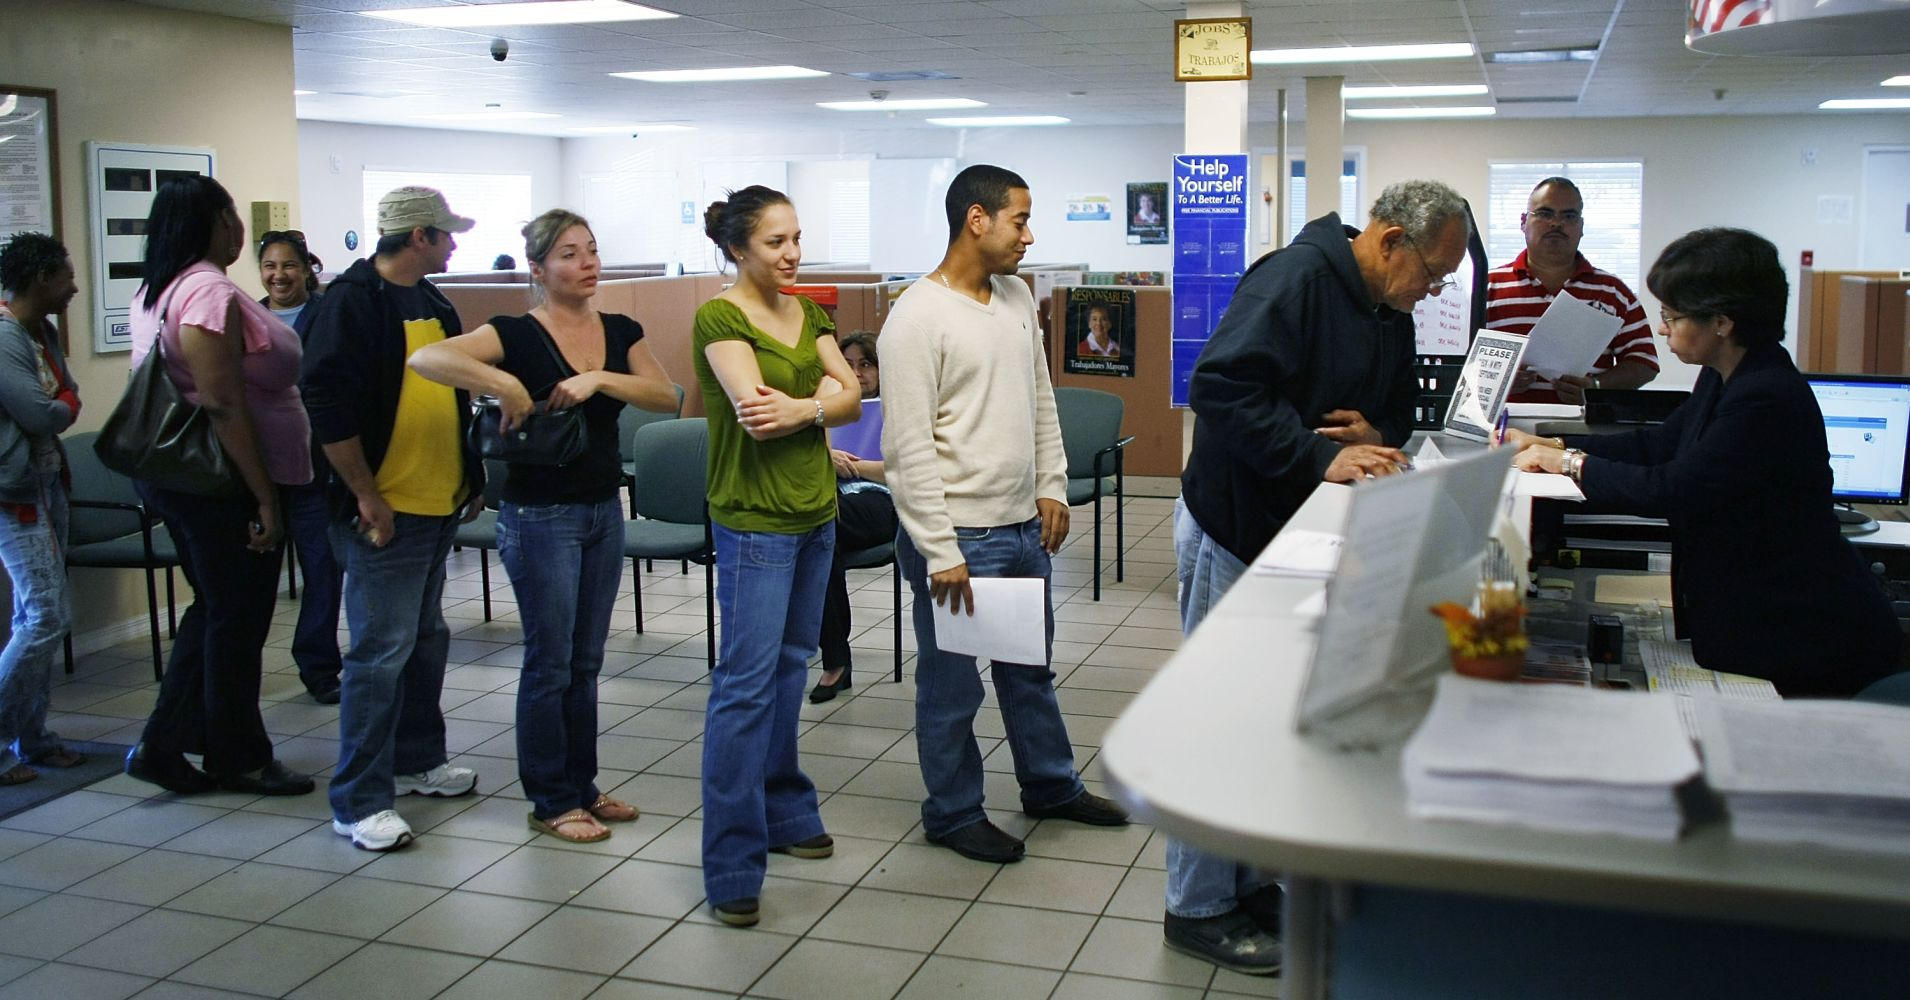 us-weekly-jobless-claims-rose-more-than-expected-last-week.jpg